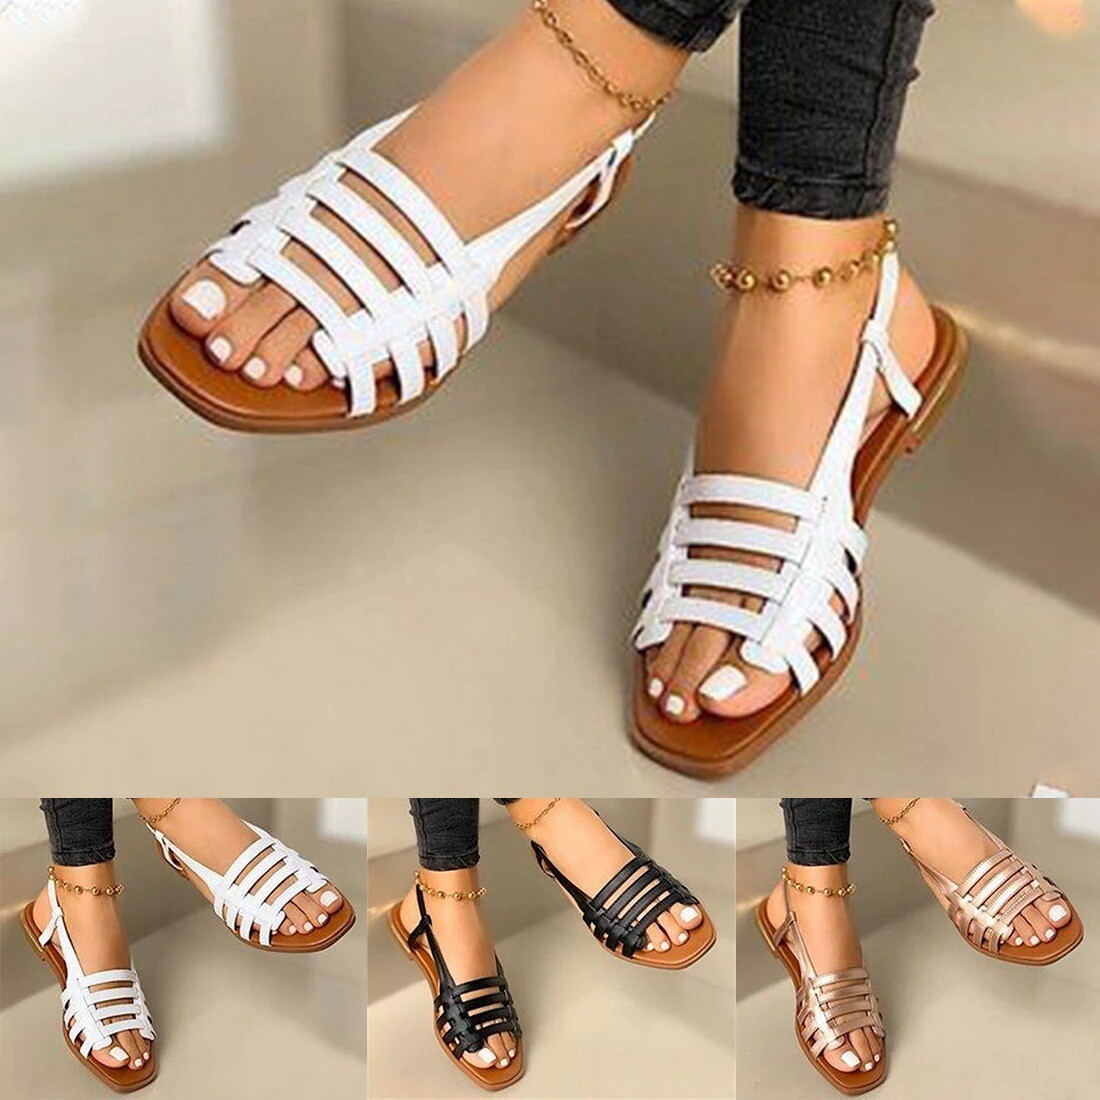 Flat Sandals Elegant Ladies Summer Open Toe Outdoor Fashion Leather Hollow Out Cute Sandals For Women